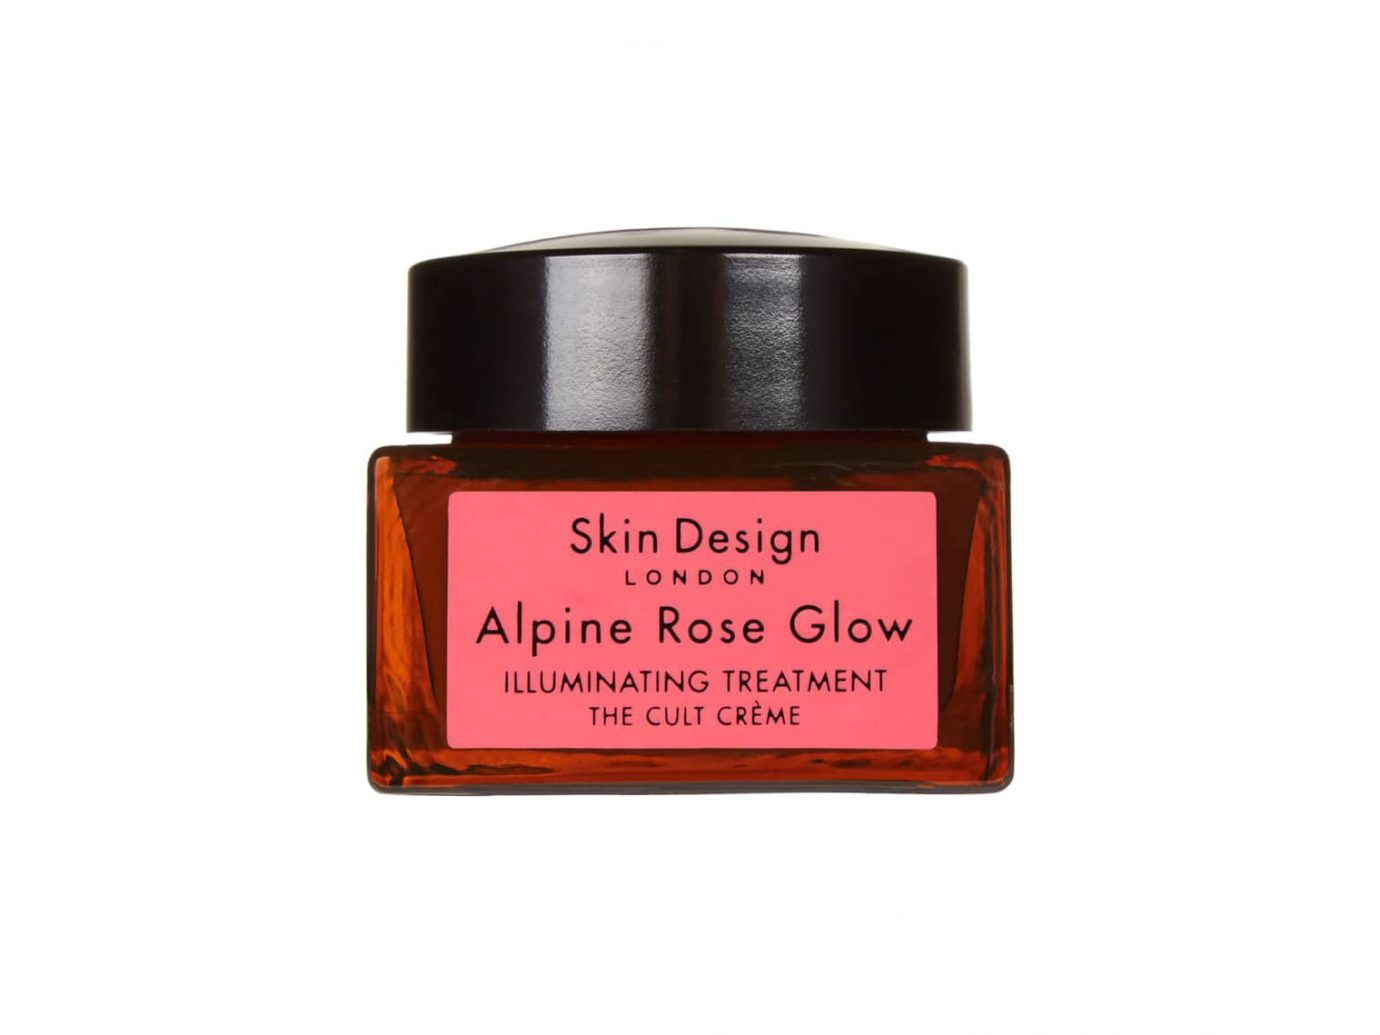 Skin Design London Alpine Rose Glow Illuminating Treatment Crème